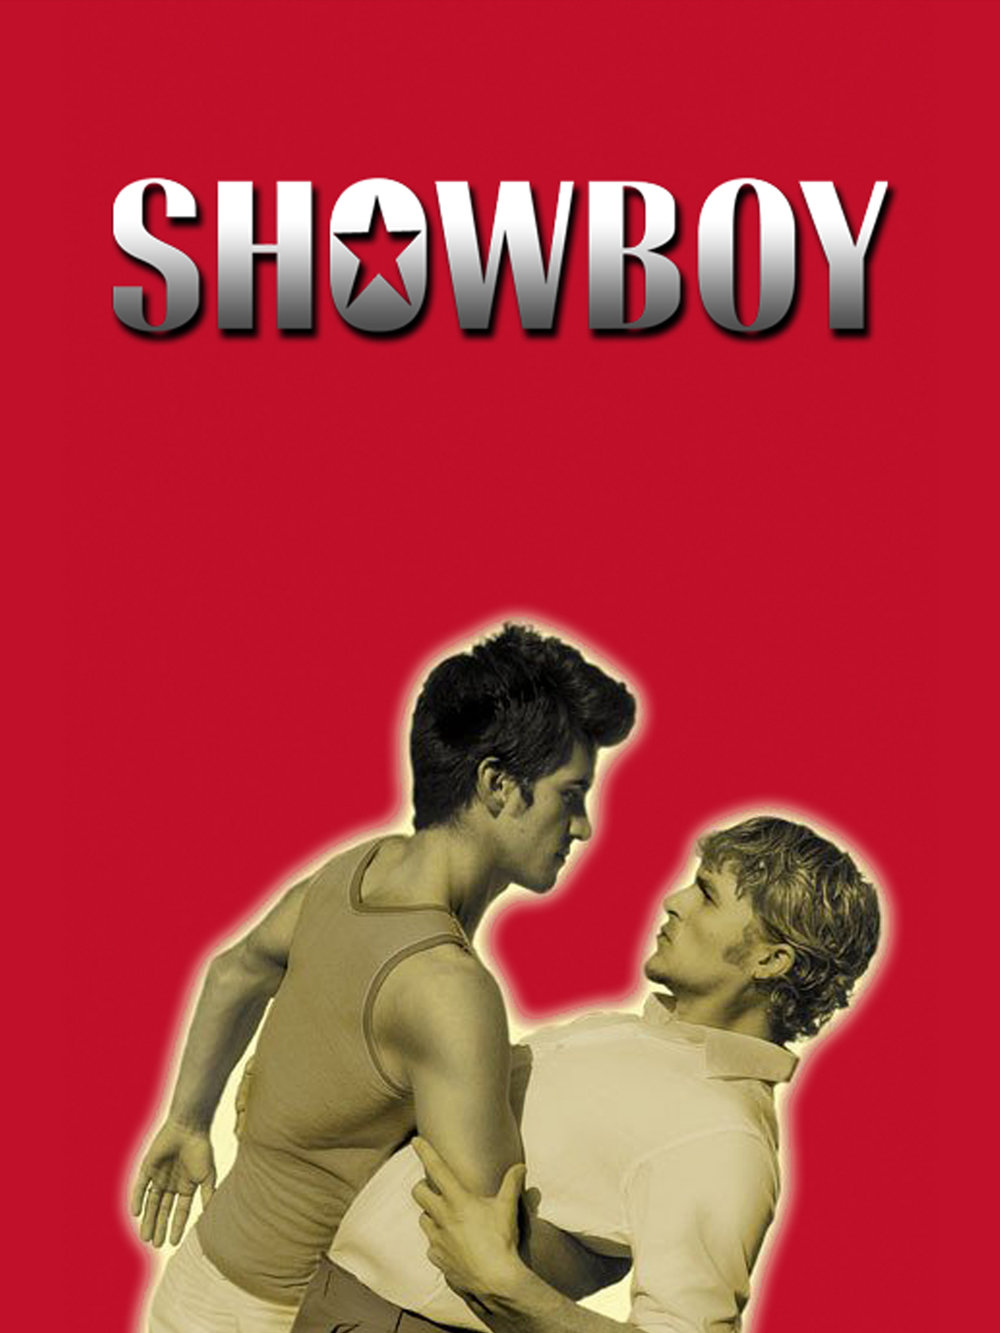 Here-Showboy-Full-Image-en-US.jpg